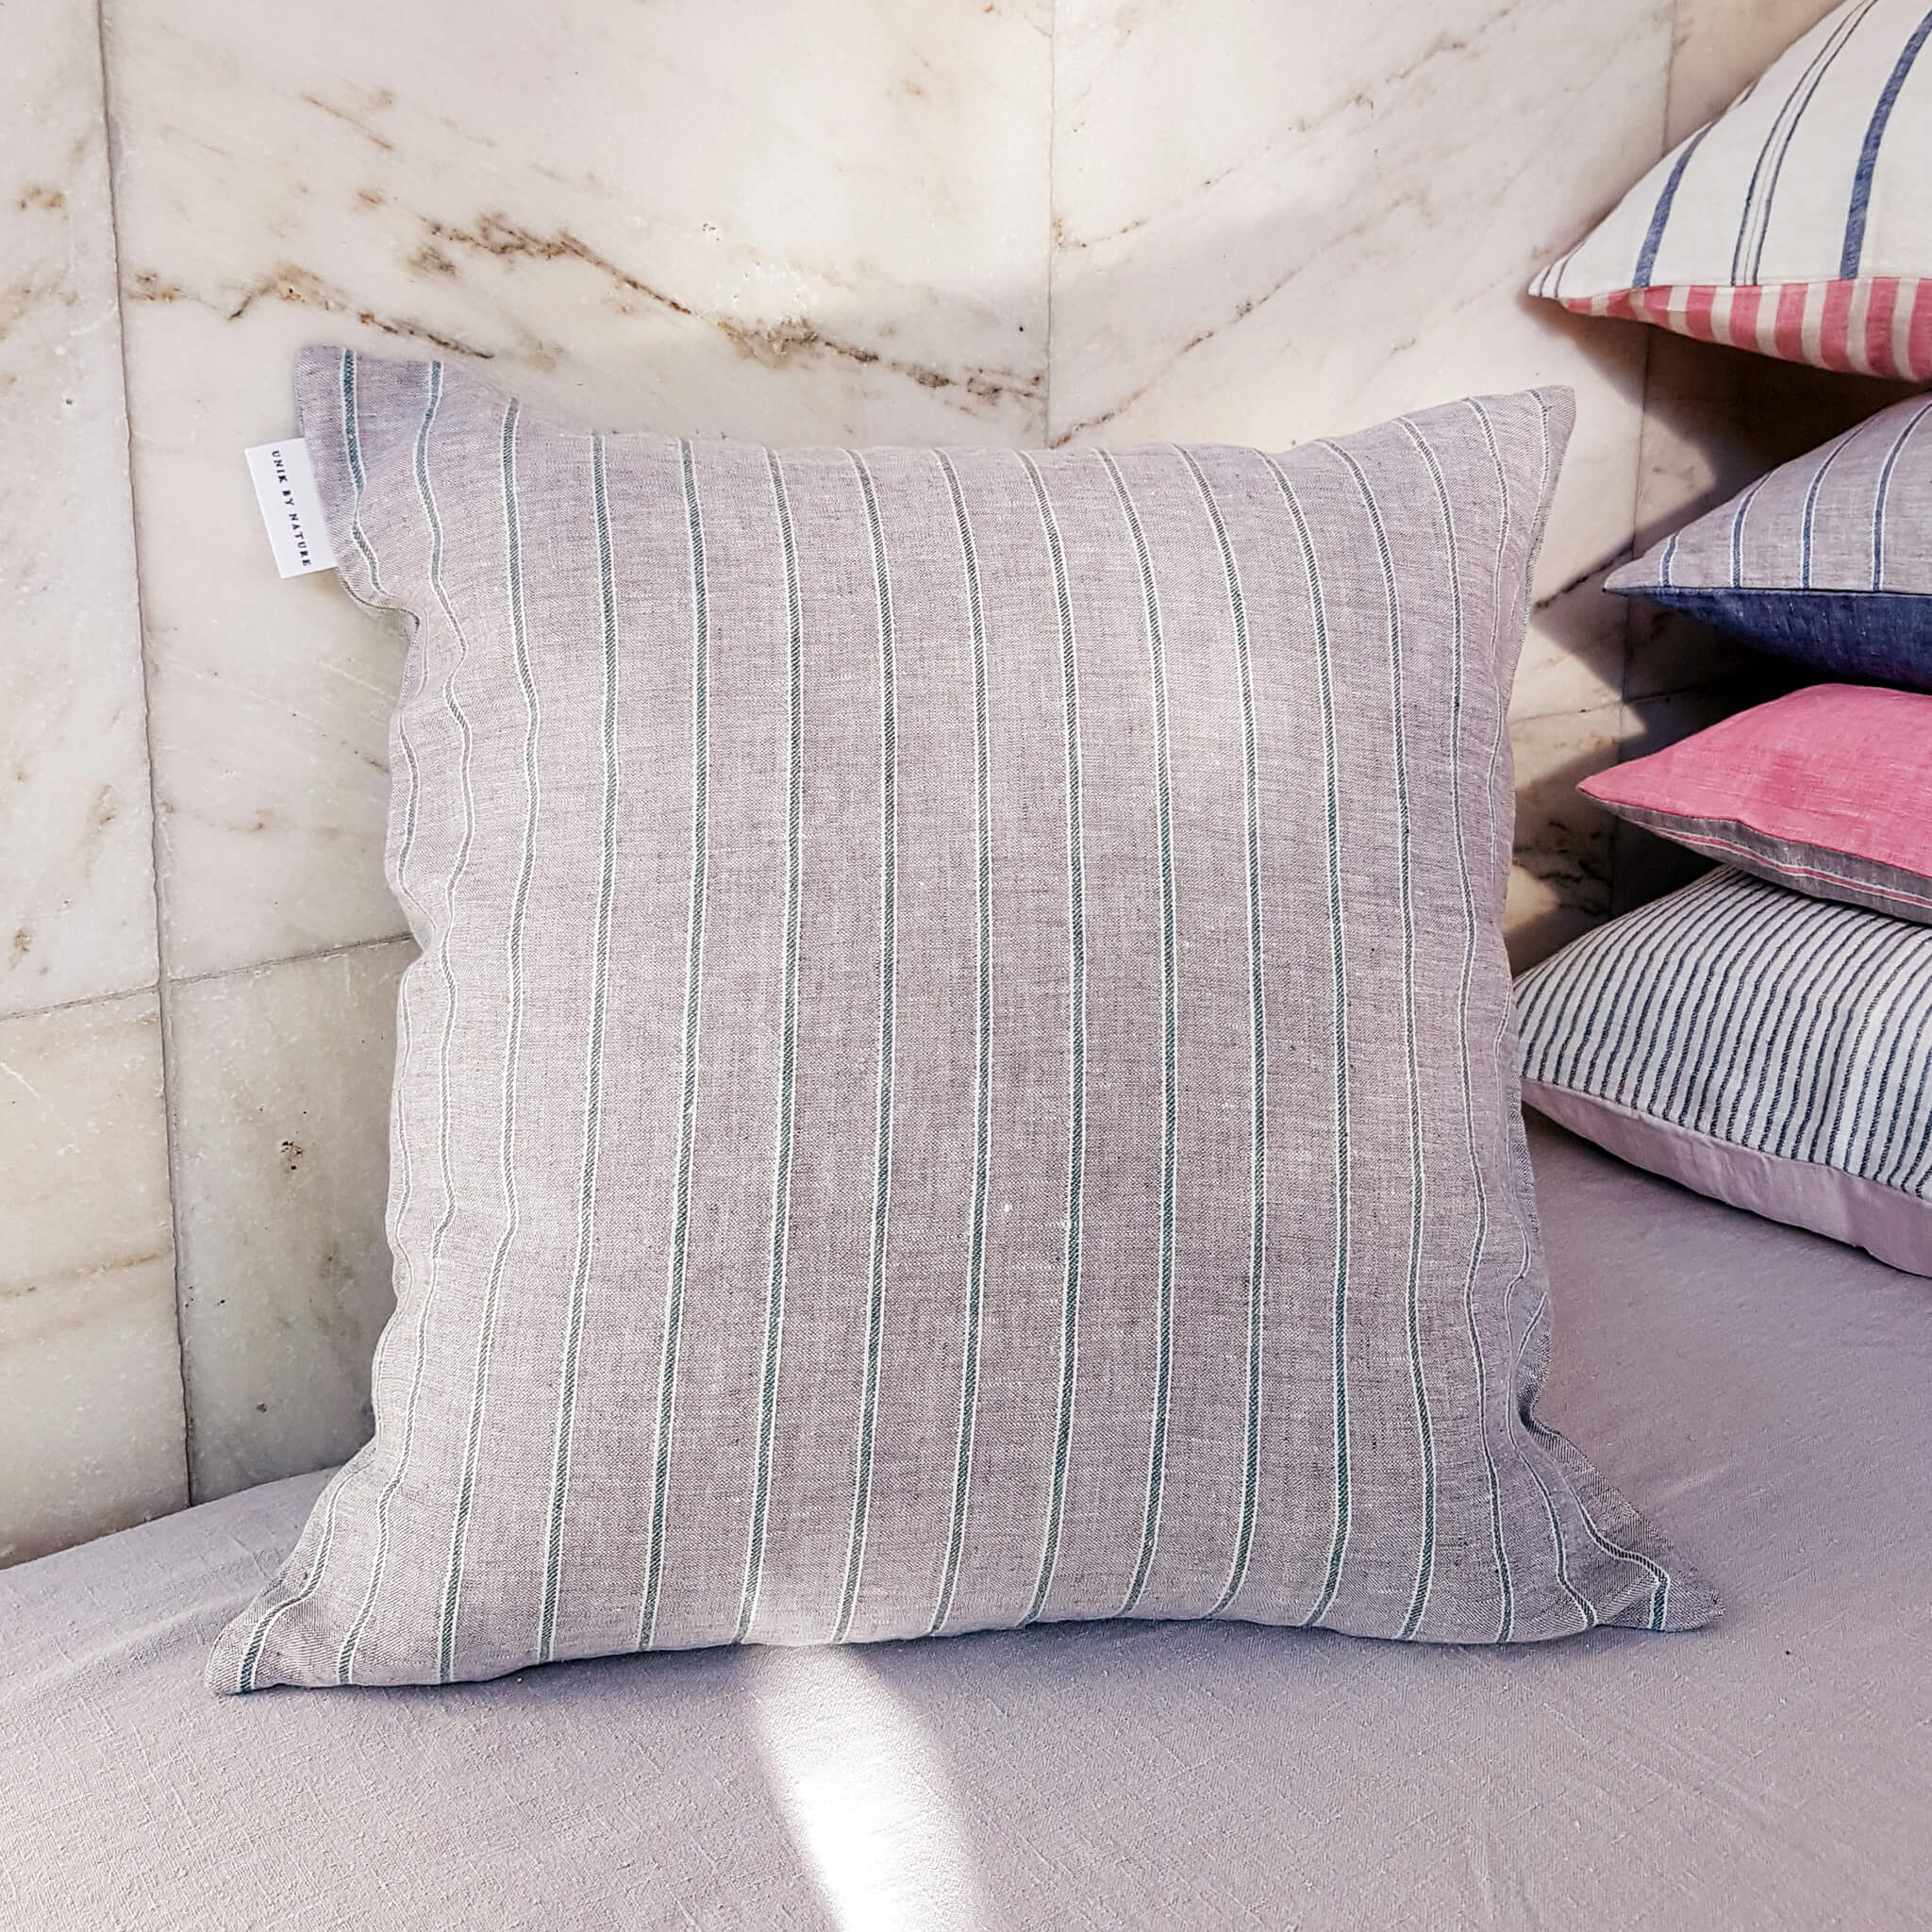 Unik by Nature Korpo Linen Cushion Cover 50 x 50 Sea Kale Green - Unik by Nature